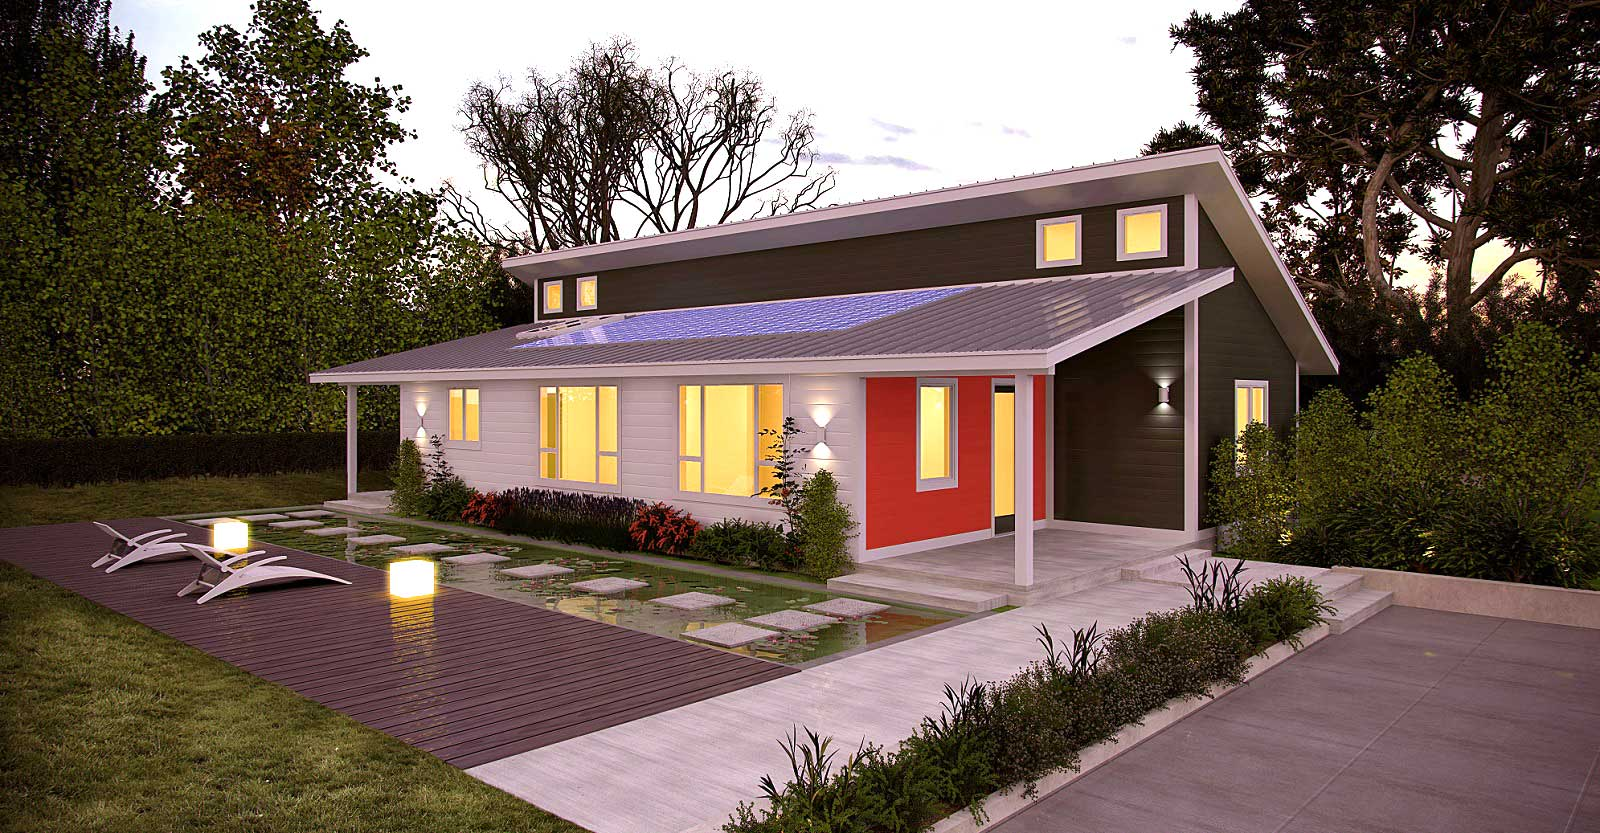 Zero-Energy-Pre-Fab-Home-Ridgeline Zero Energy Home Remodeling on small super insulated homes, energy star homes, low energy homes, reuse homes, energy independent homes, zero waste homes, off-grid homes, energy efficient homes, bob schmitt homes, zero carbon homes, net zero homes, energy self-sufficient homes, solar homes, recycling homes, leed homes, renewable energy homes, cargotecture homes, negative energy homes, economy homes,